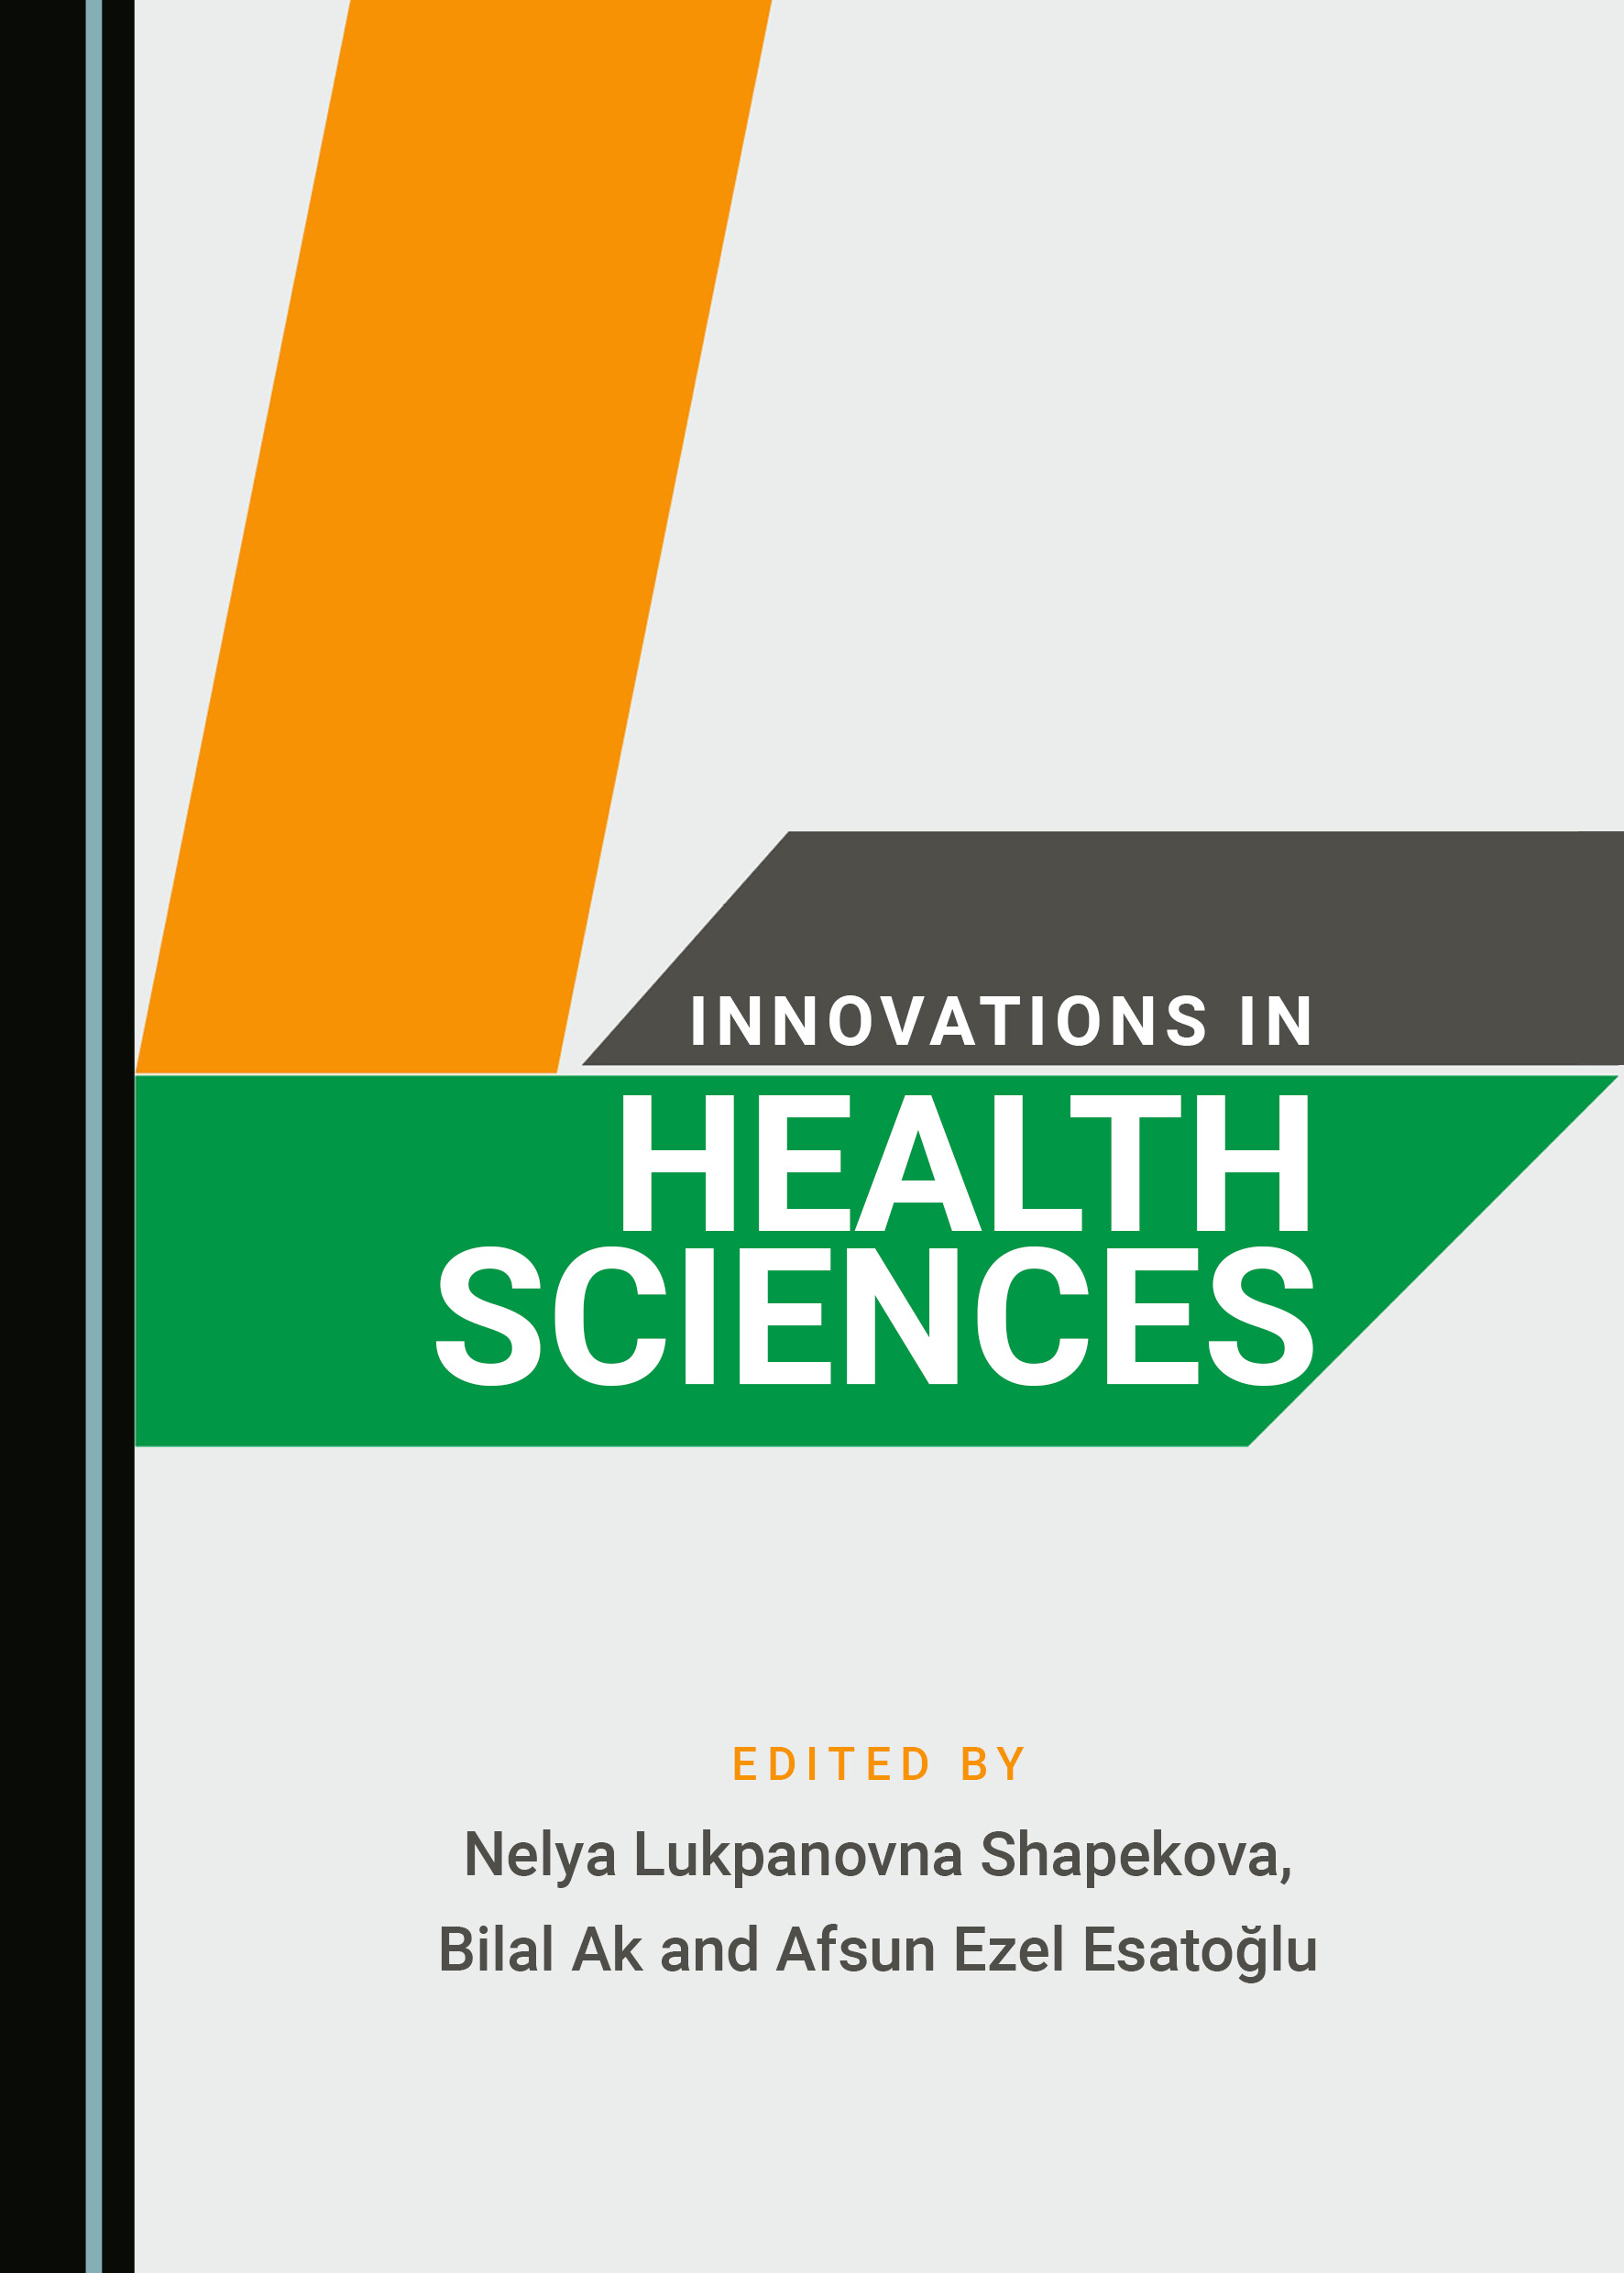 Innovations in Health Sciences